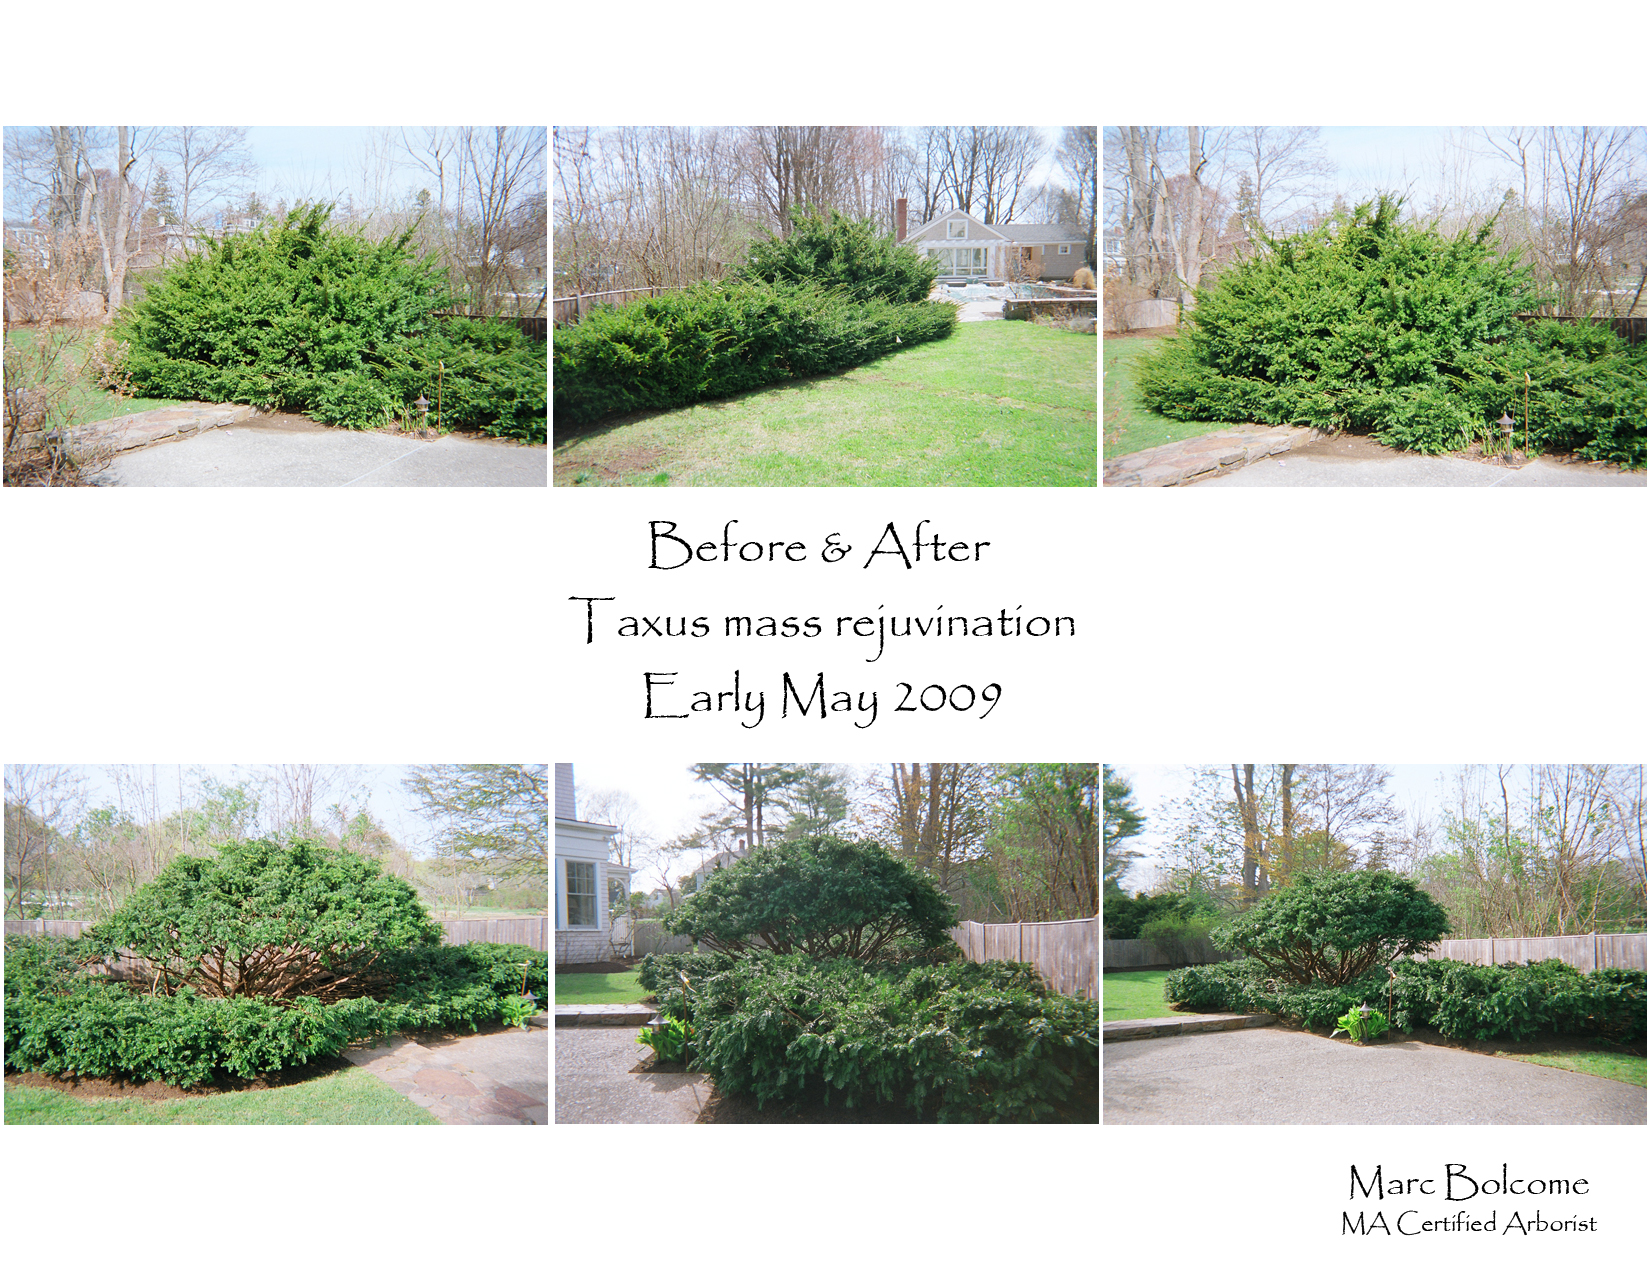 Arborizing the central shrub elevates its crown and showcases the rich cinnamon-red stems